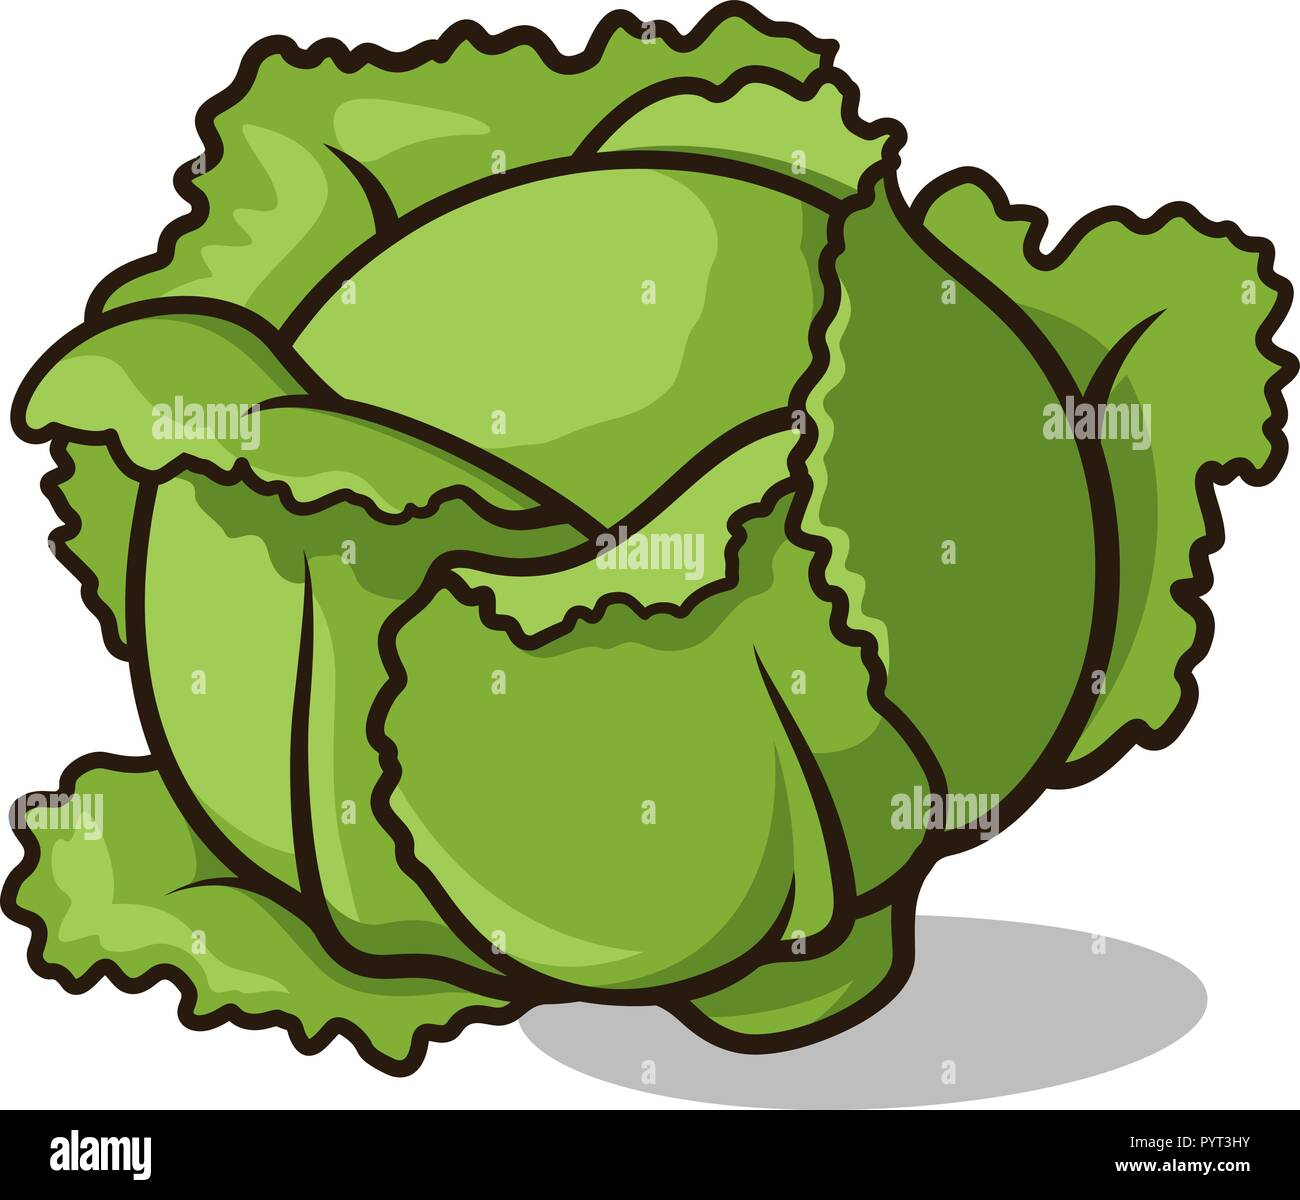 vector illustration of a head of cabbage isolated on white stock vector  image & art - alamy  alamy